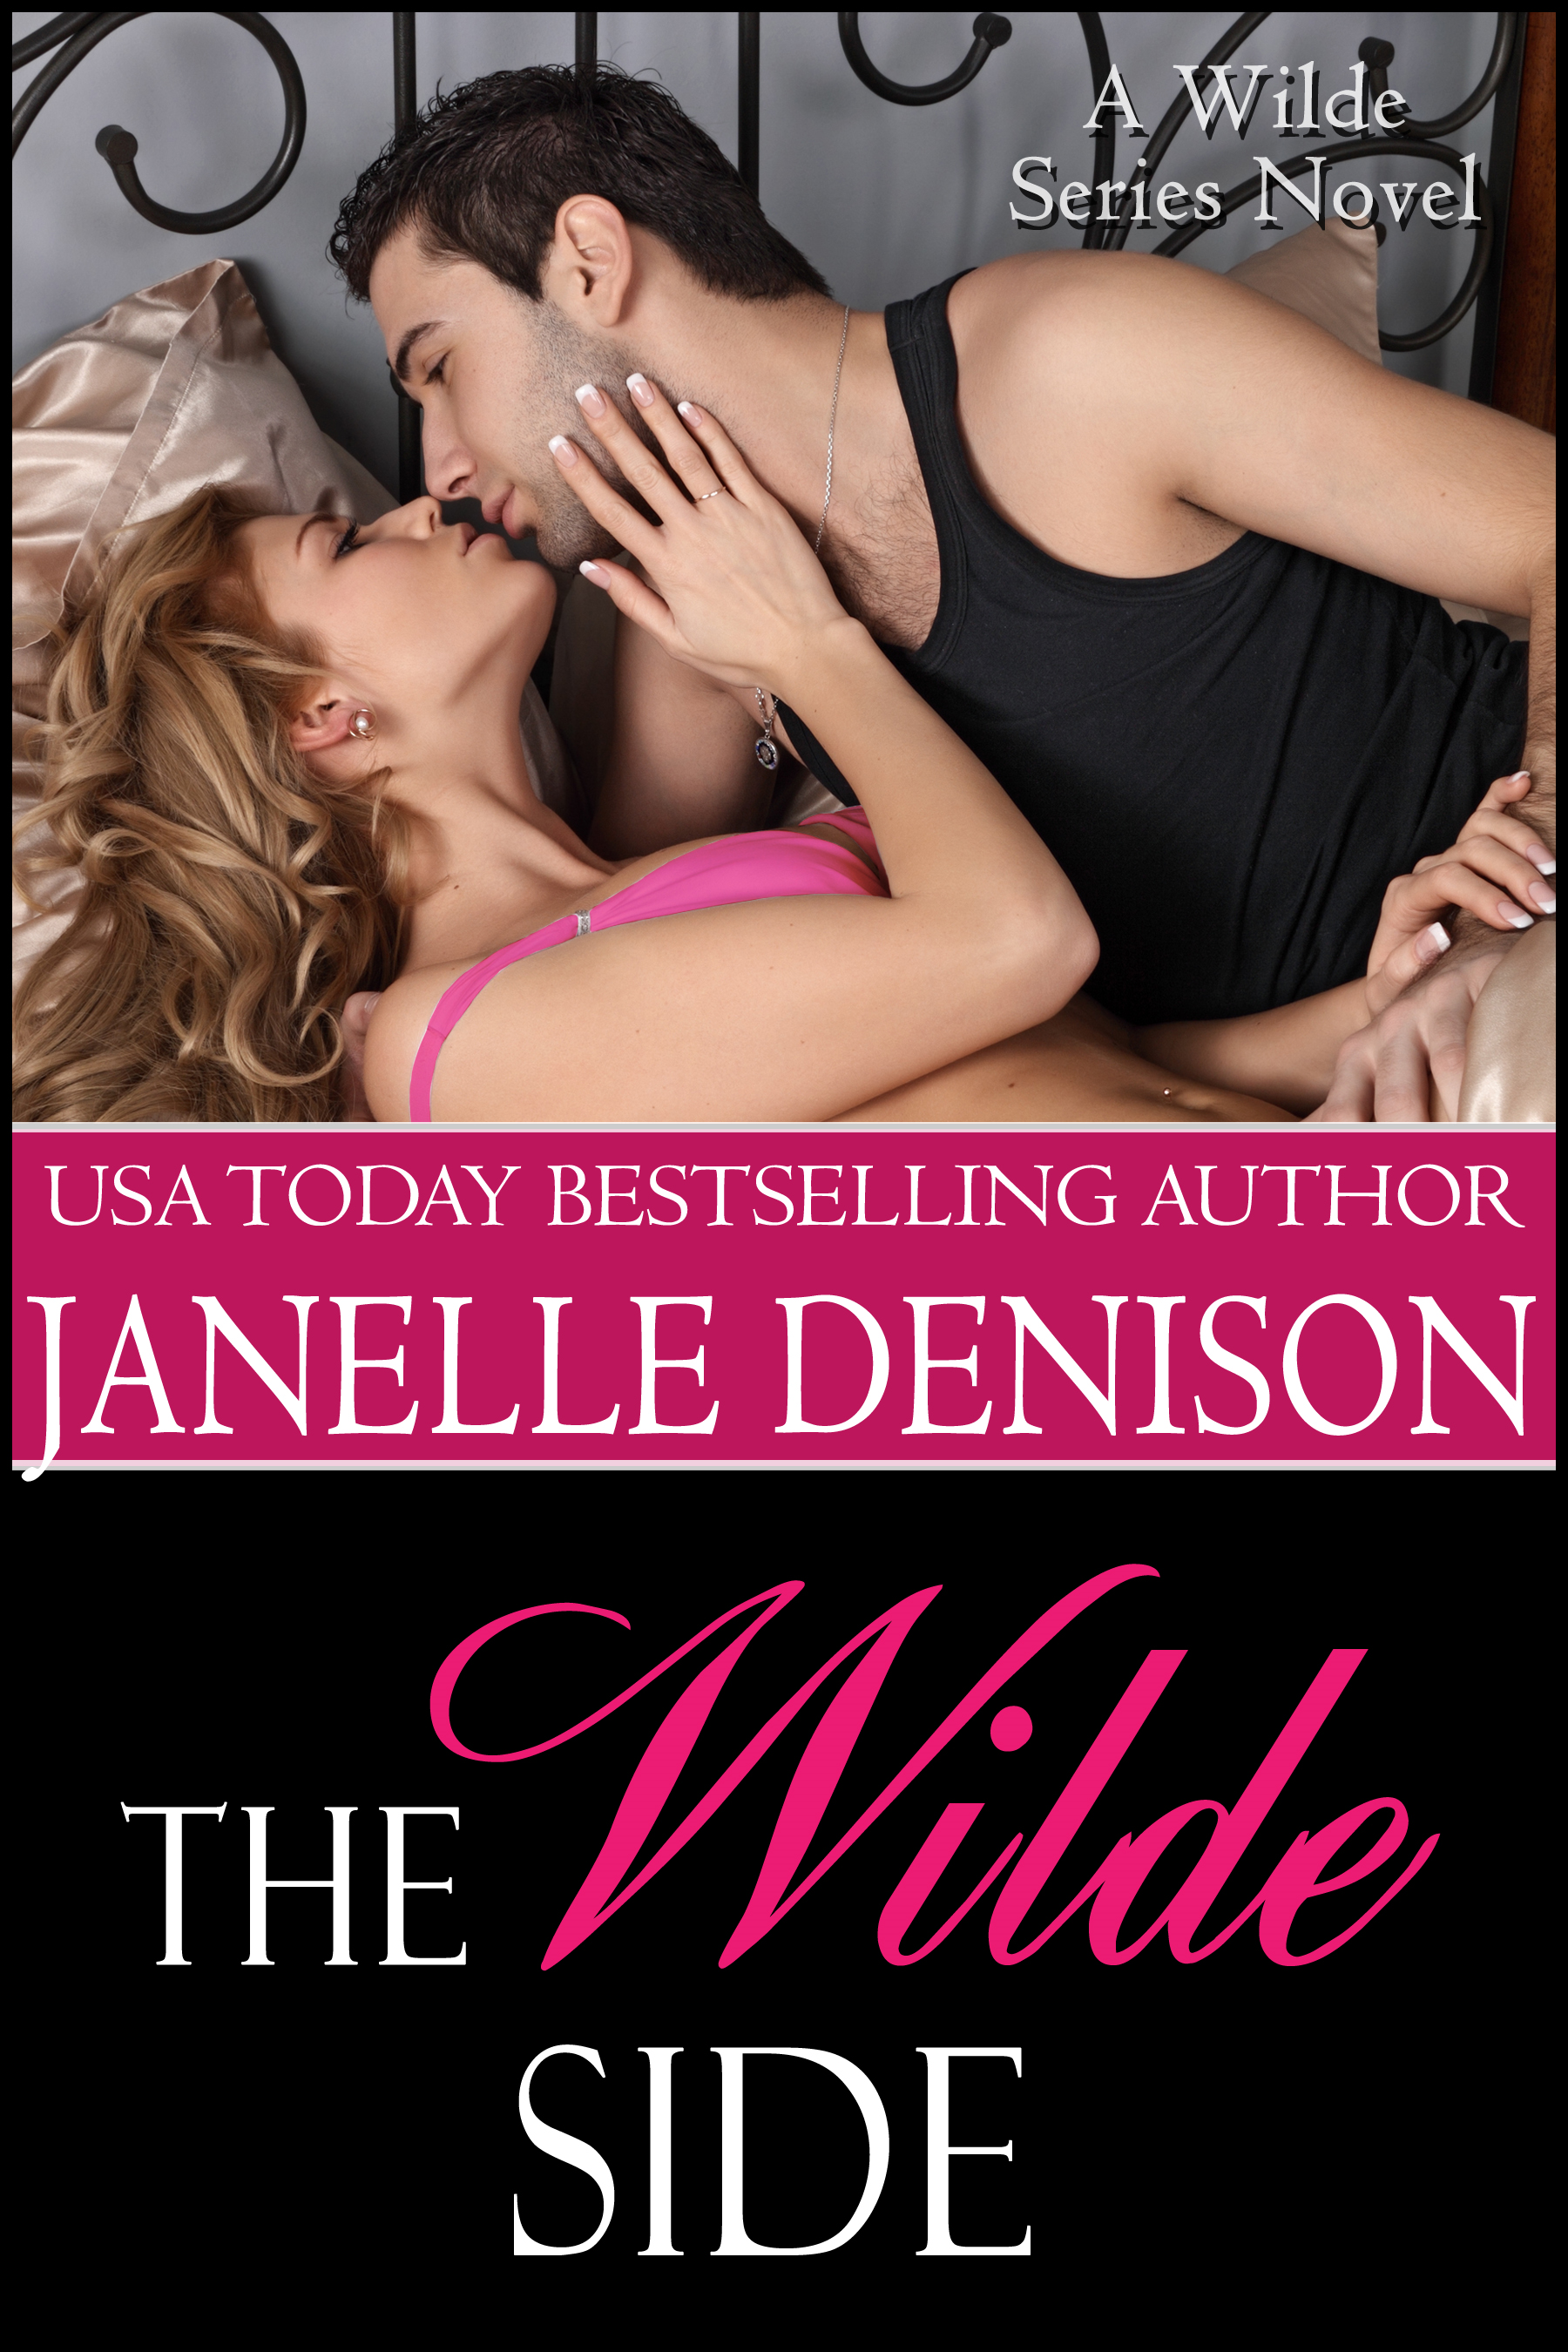 The Wilde Side By: Janelle Denison